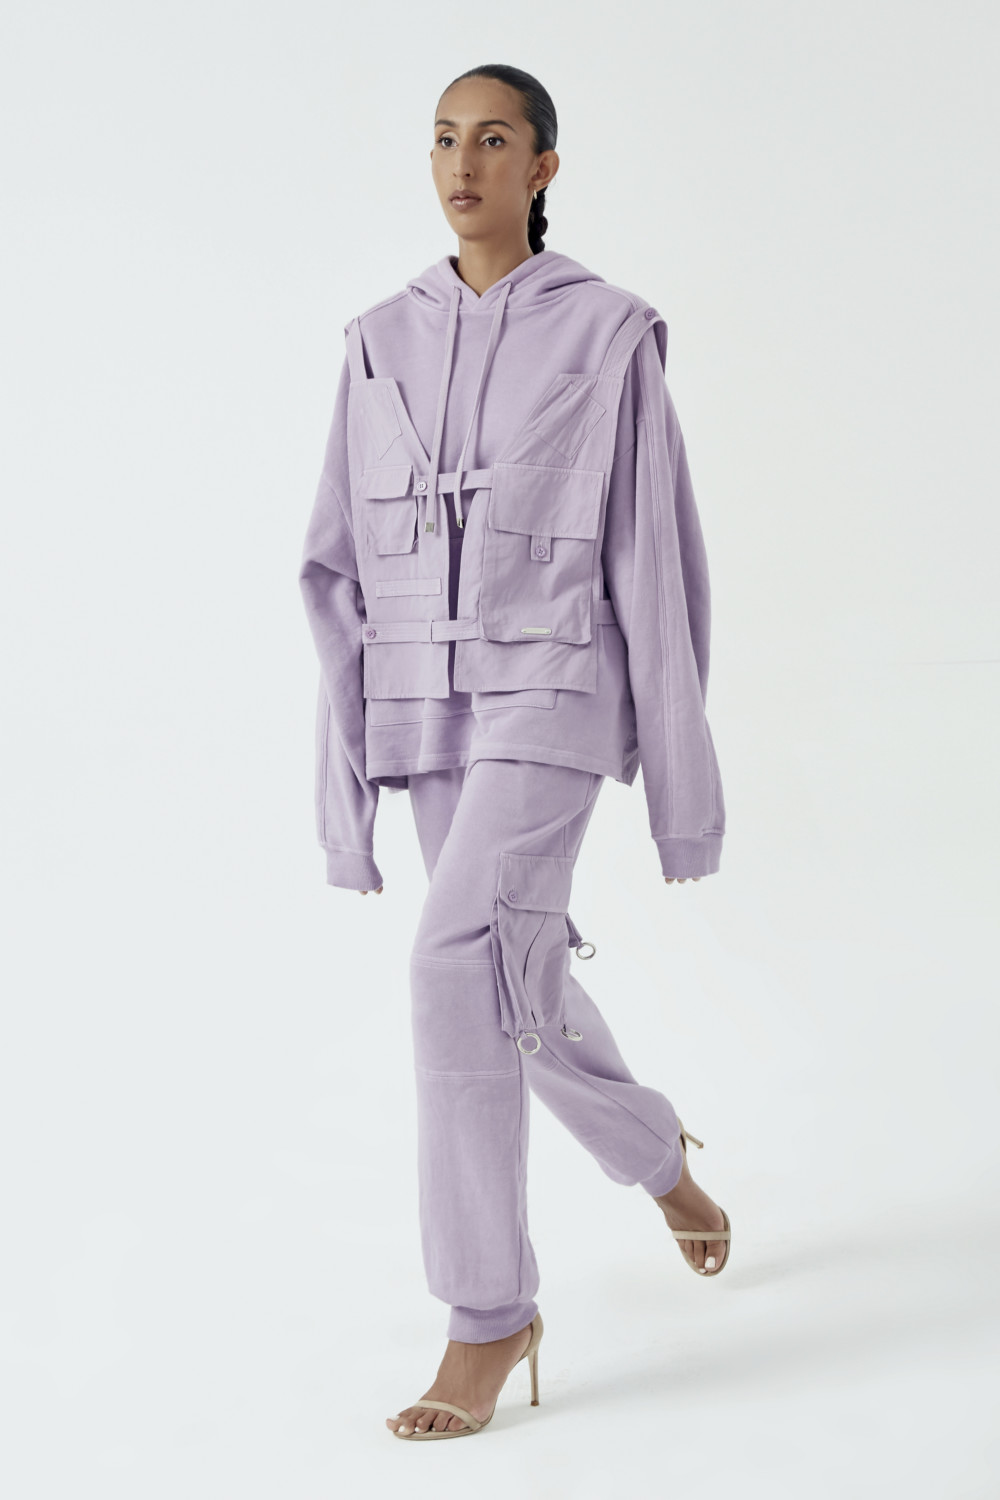 Private Policy Women Men Spring Summer 2021 New York